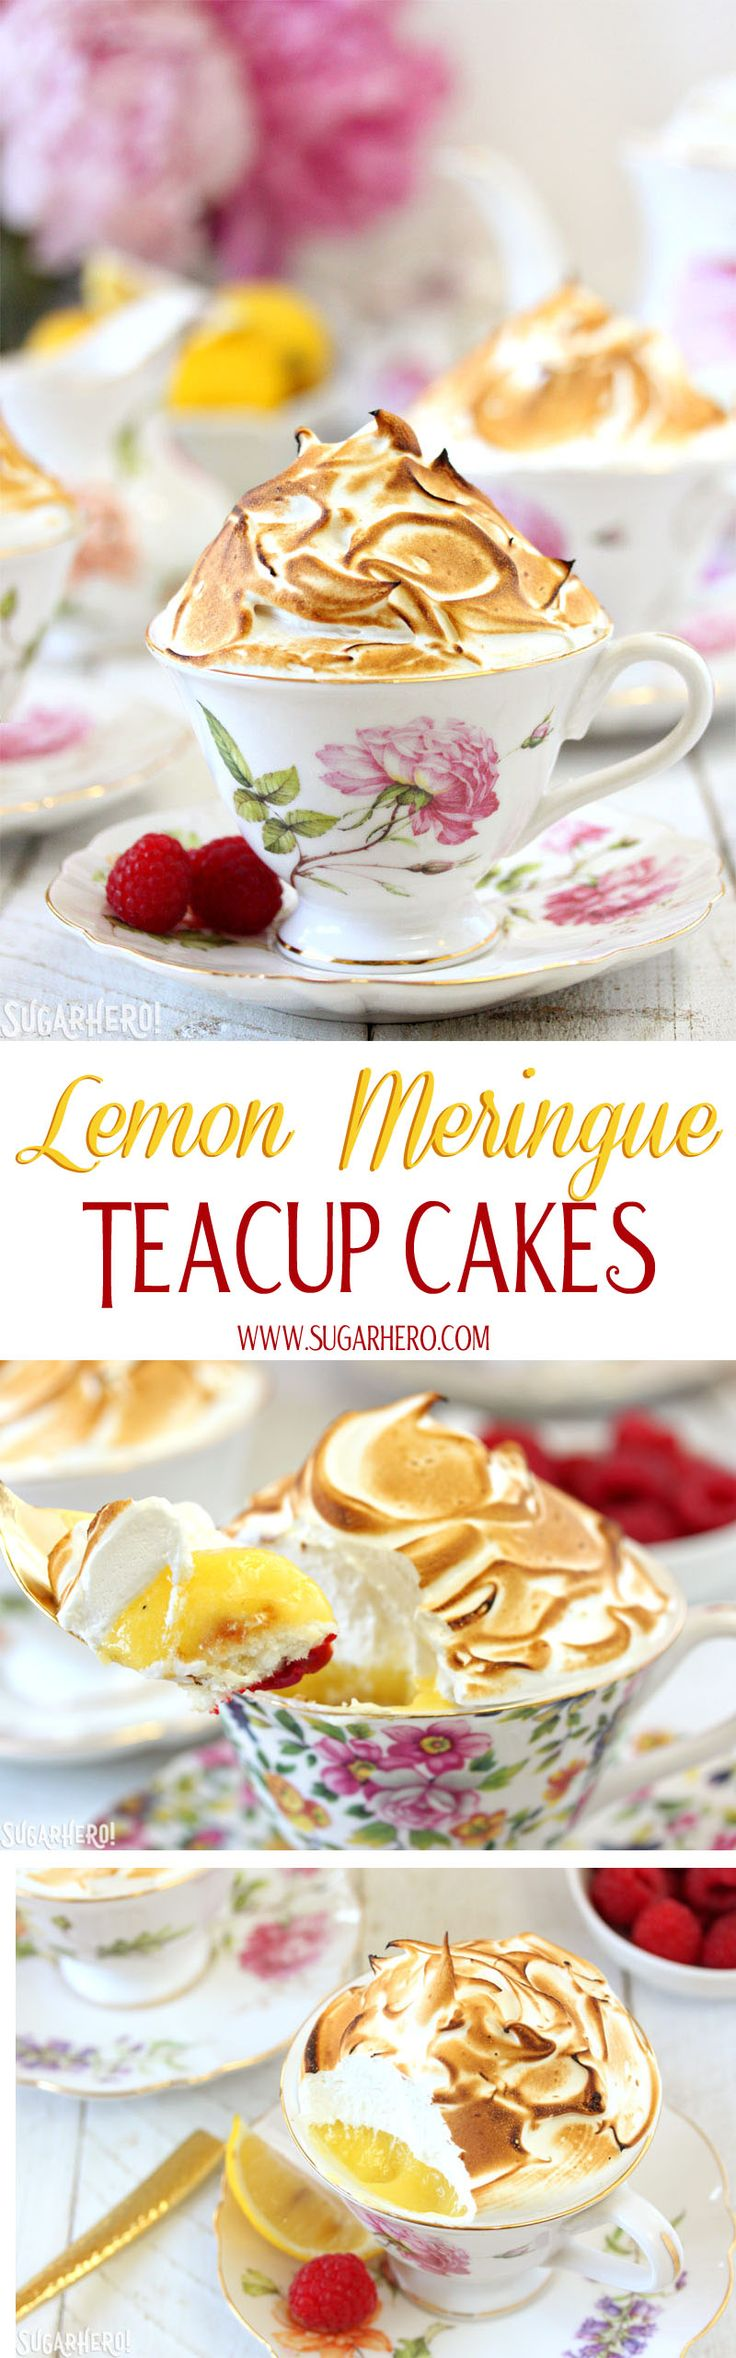 Lemon Meringue Teacup Cakes -lemon cupcakes baked right in teacups! These little cakes are gorgeous, and they taste great too! Filled with raspberry jam and lemon curd, and topped with a big pile of toasted meringue. | From SugarHero.com